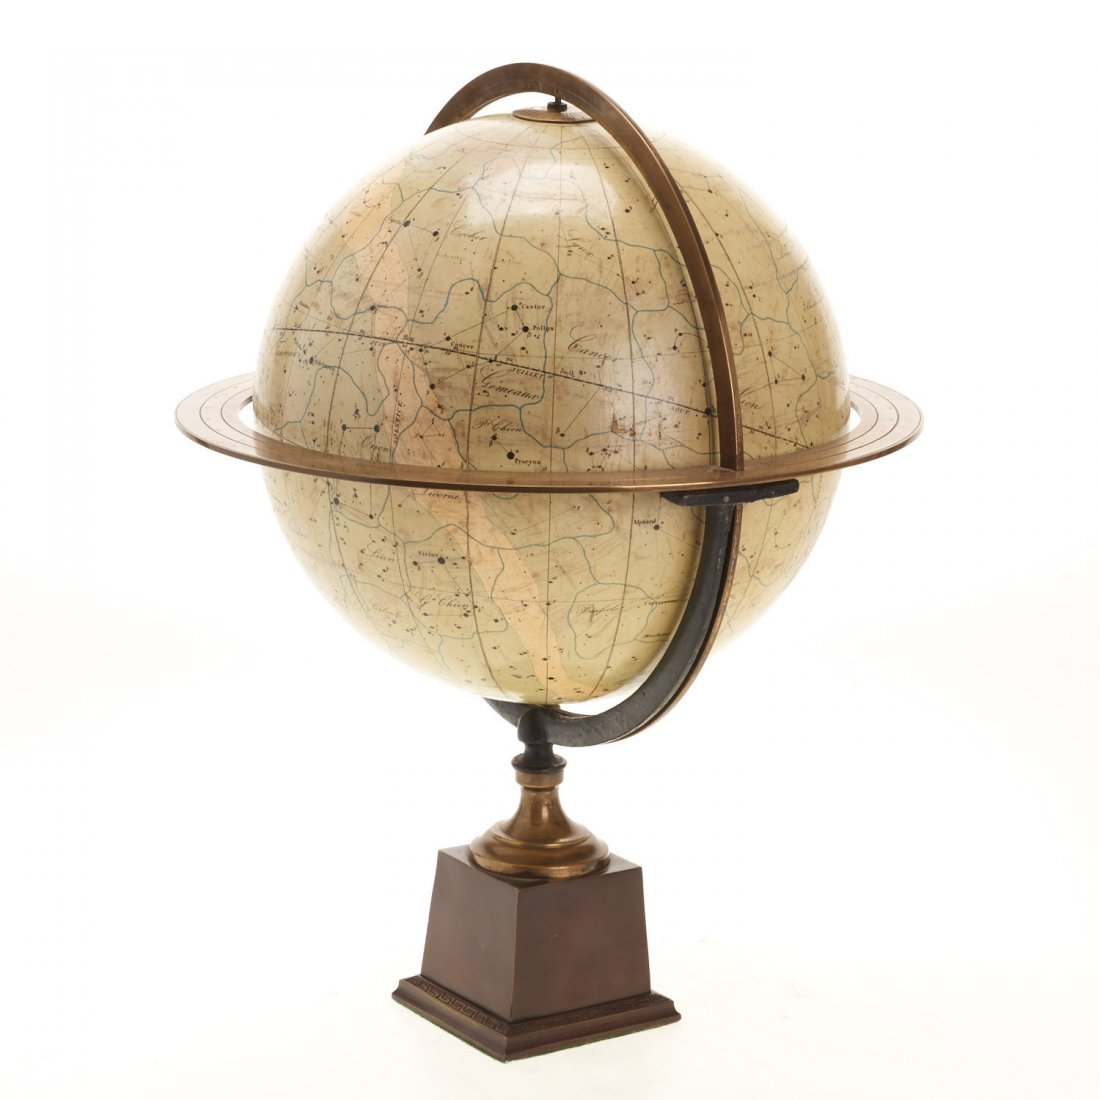 French celestial table globe by Charles Dien - 3